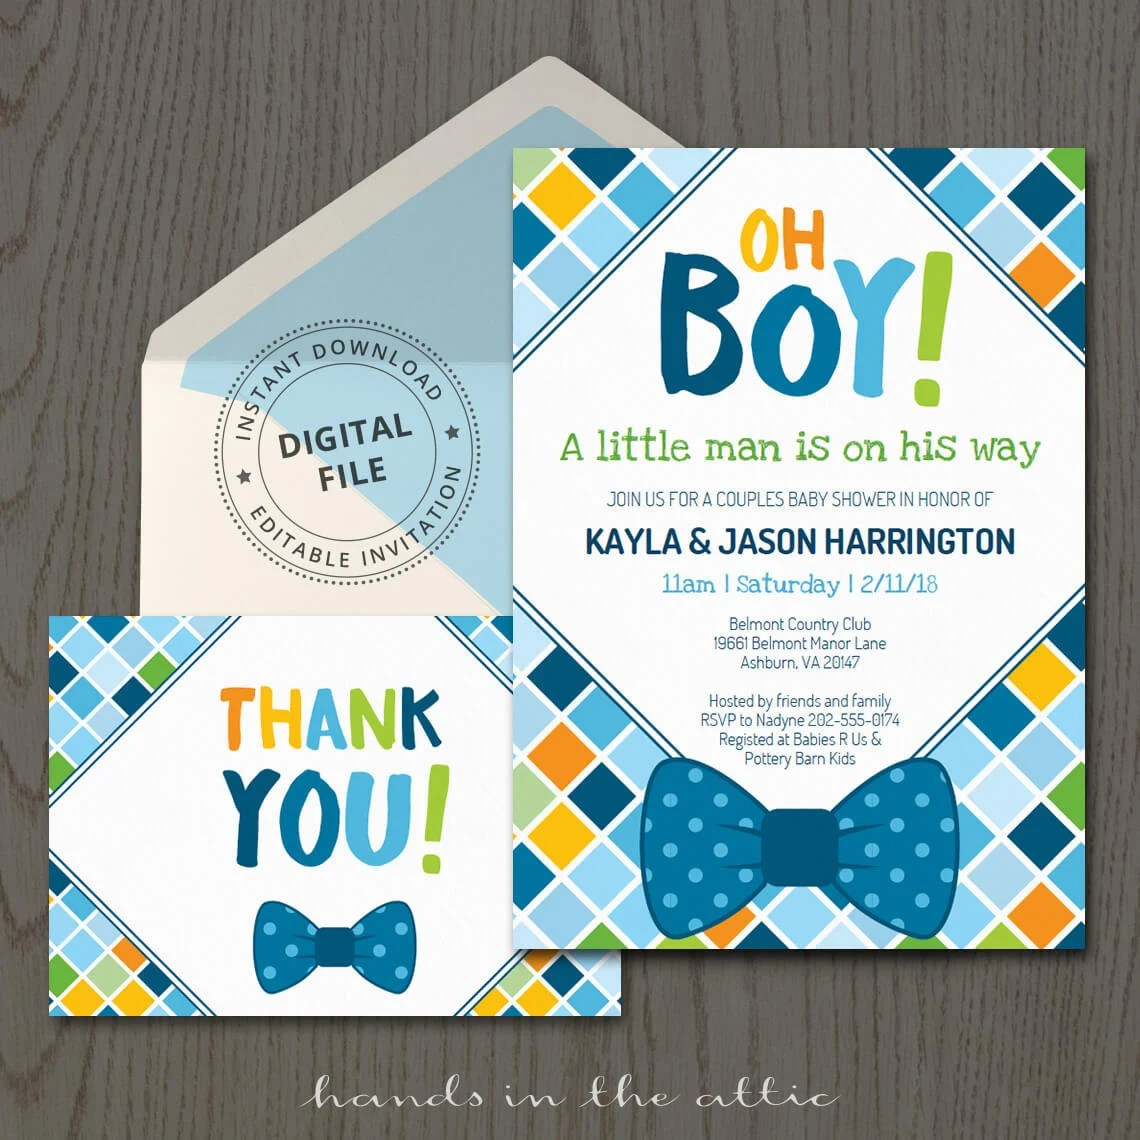 Bow tie baby shower invitations, themed, baby boy, invitation - baby shower invitation templates